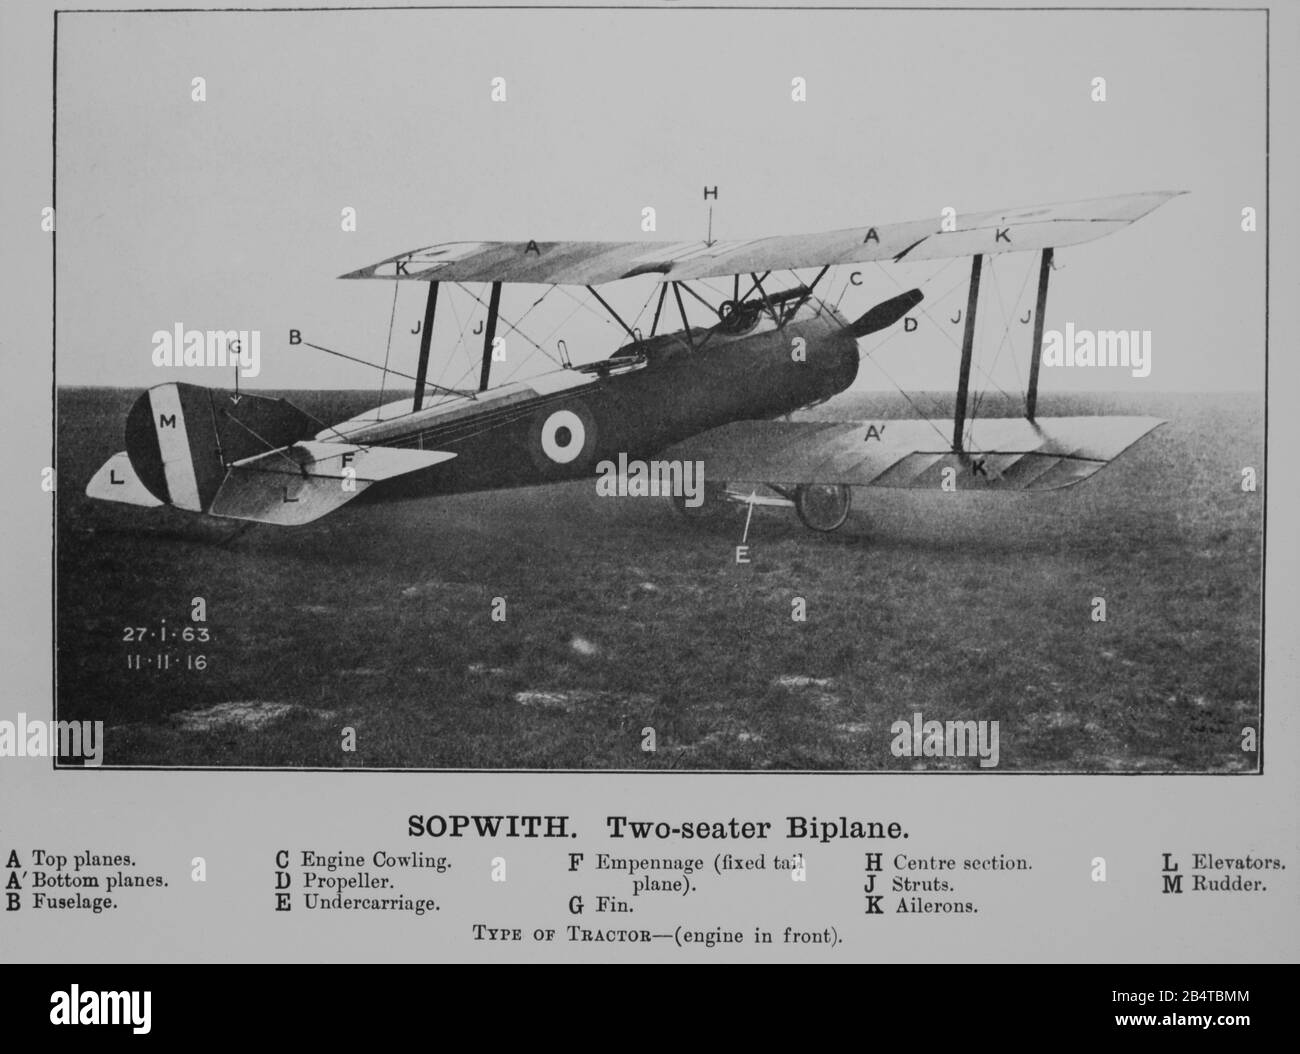 A vintage photograph of a Sopwith 1 1/2, or one and a half, Strutter Biplane. This aircraft entered service with the British Royal naval Air Service, RNAS, in February 1916. Photo taken on 11th November 1916. Stock Photo